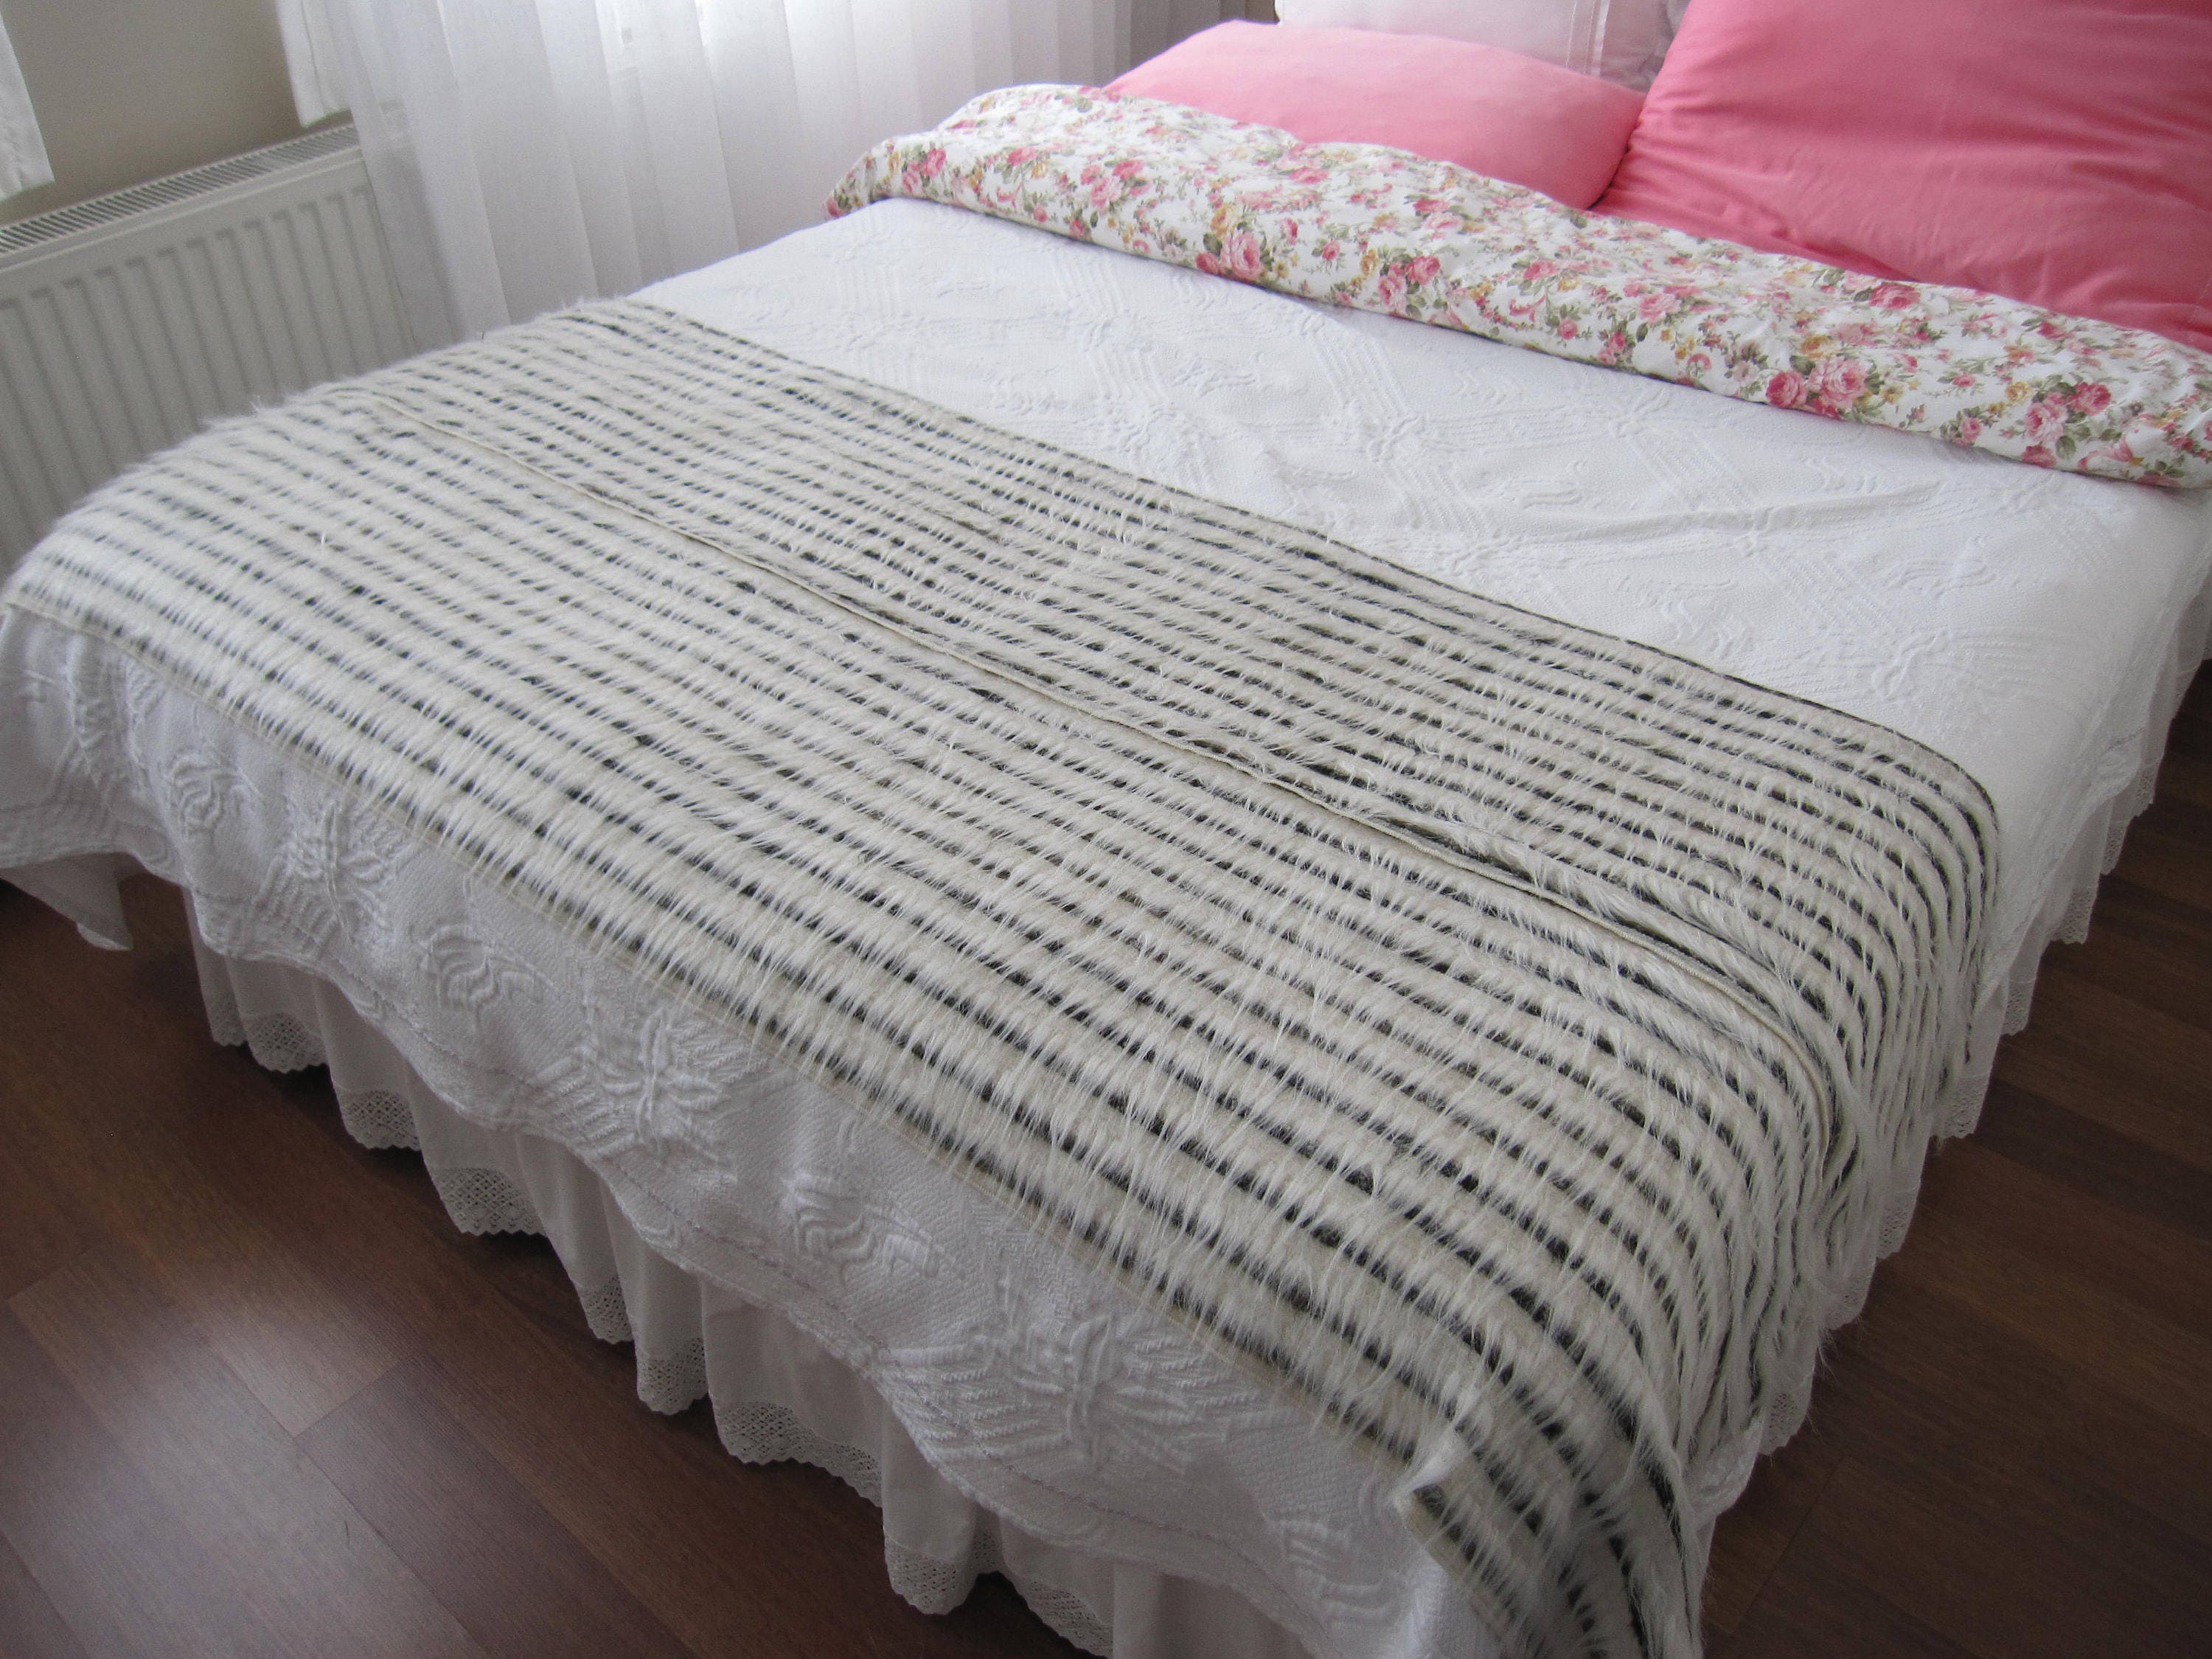 i d bed fur r bedding o u faux haired polyester b long throw pin wayfair